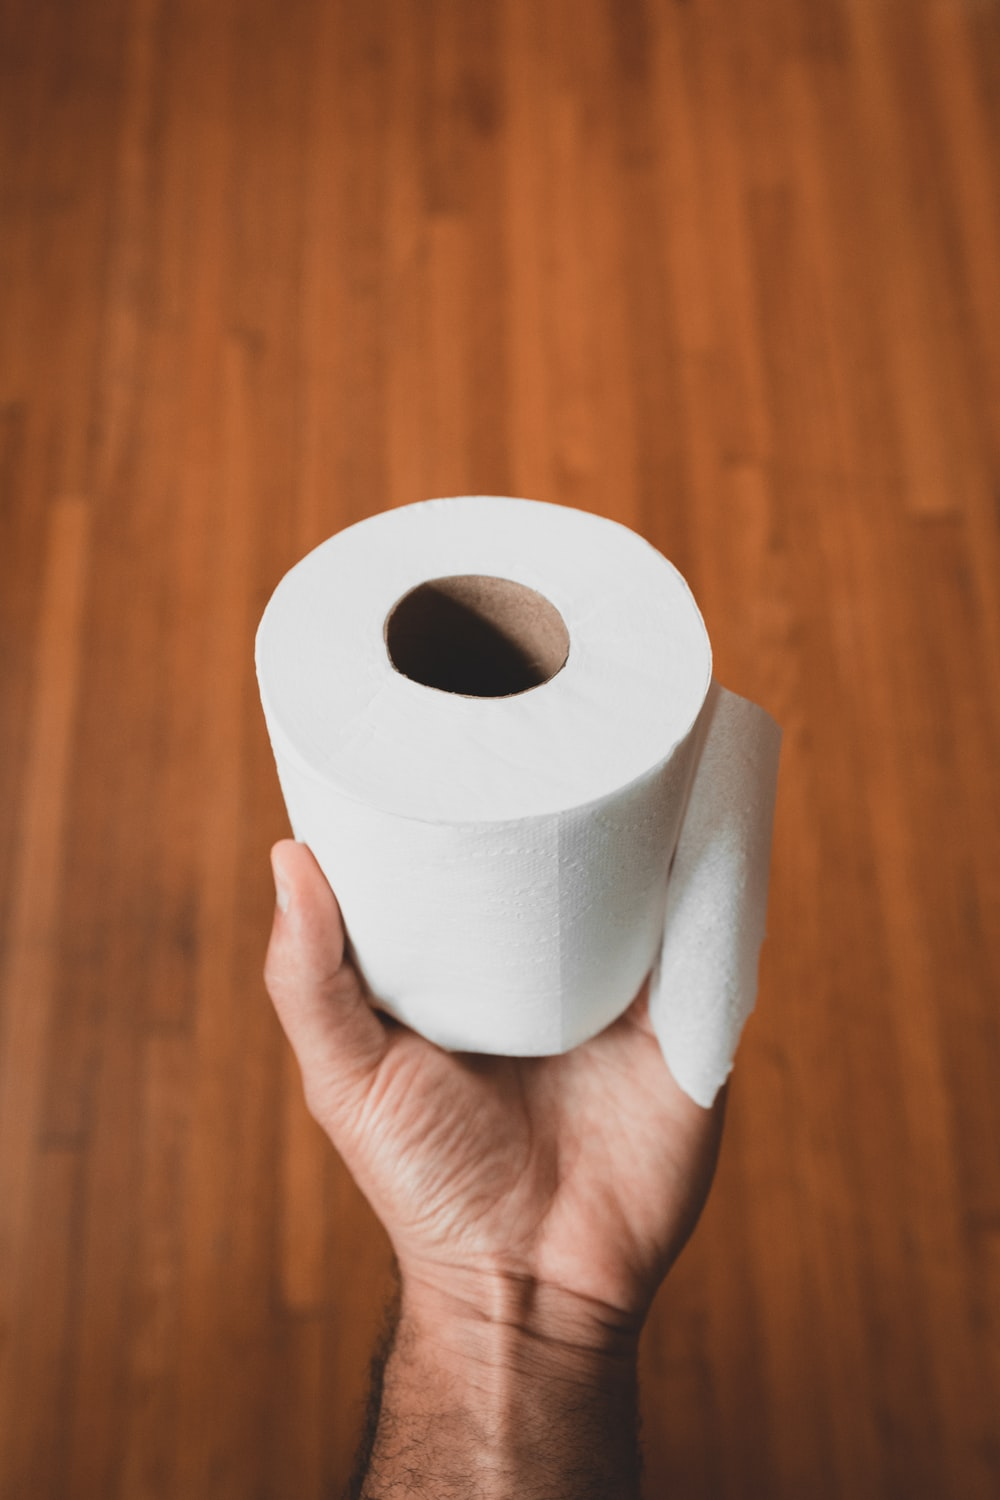 person holding white toilet paper roll